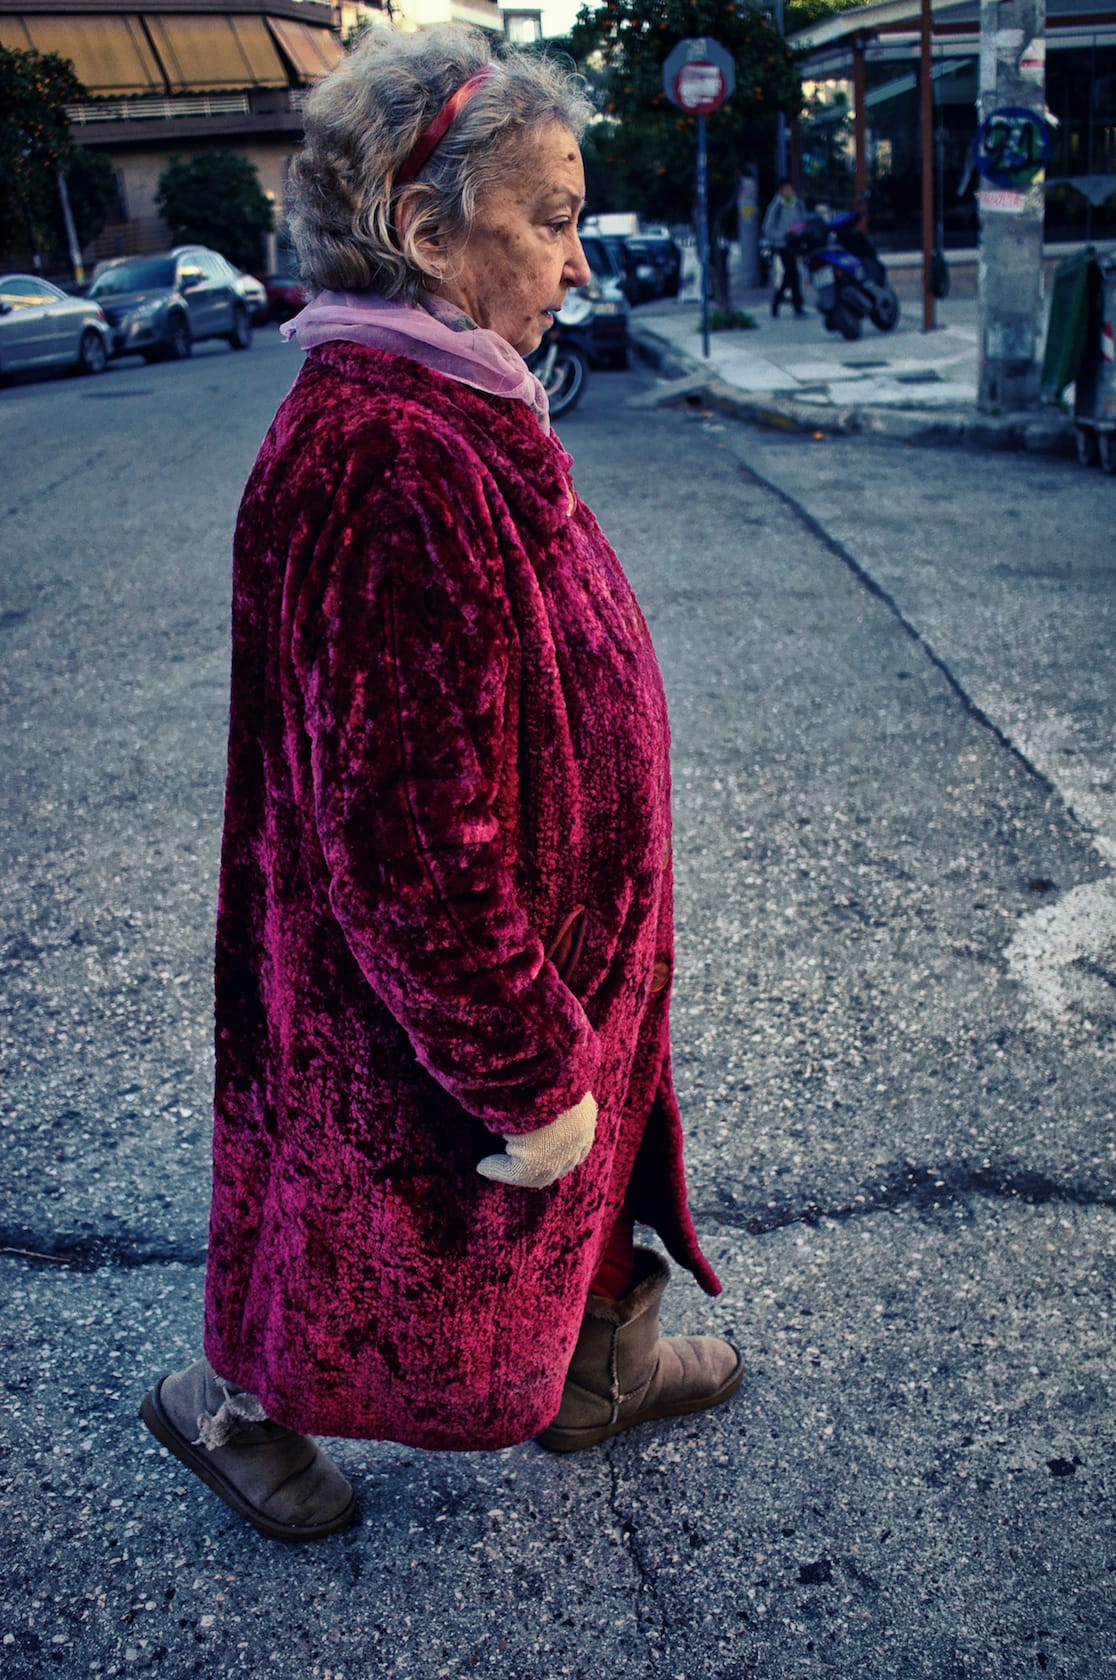 Red coat lady